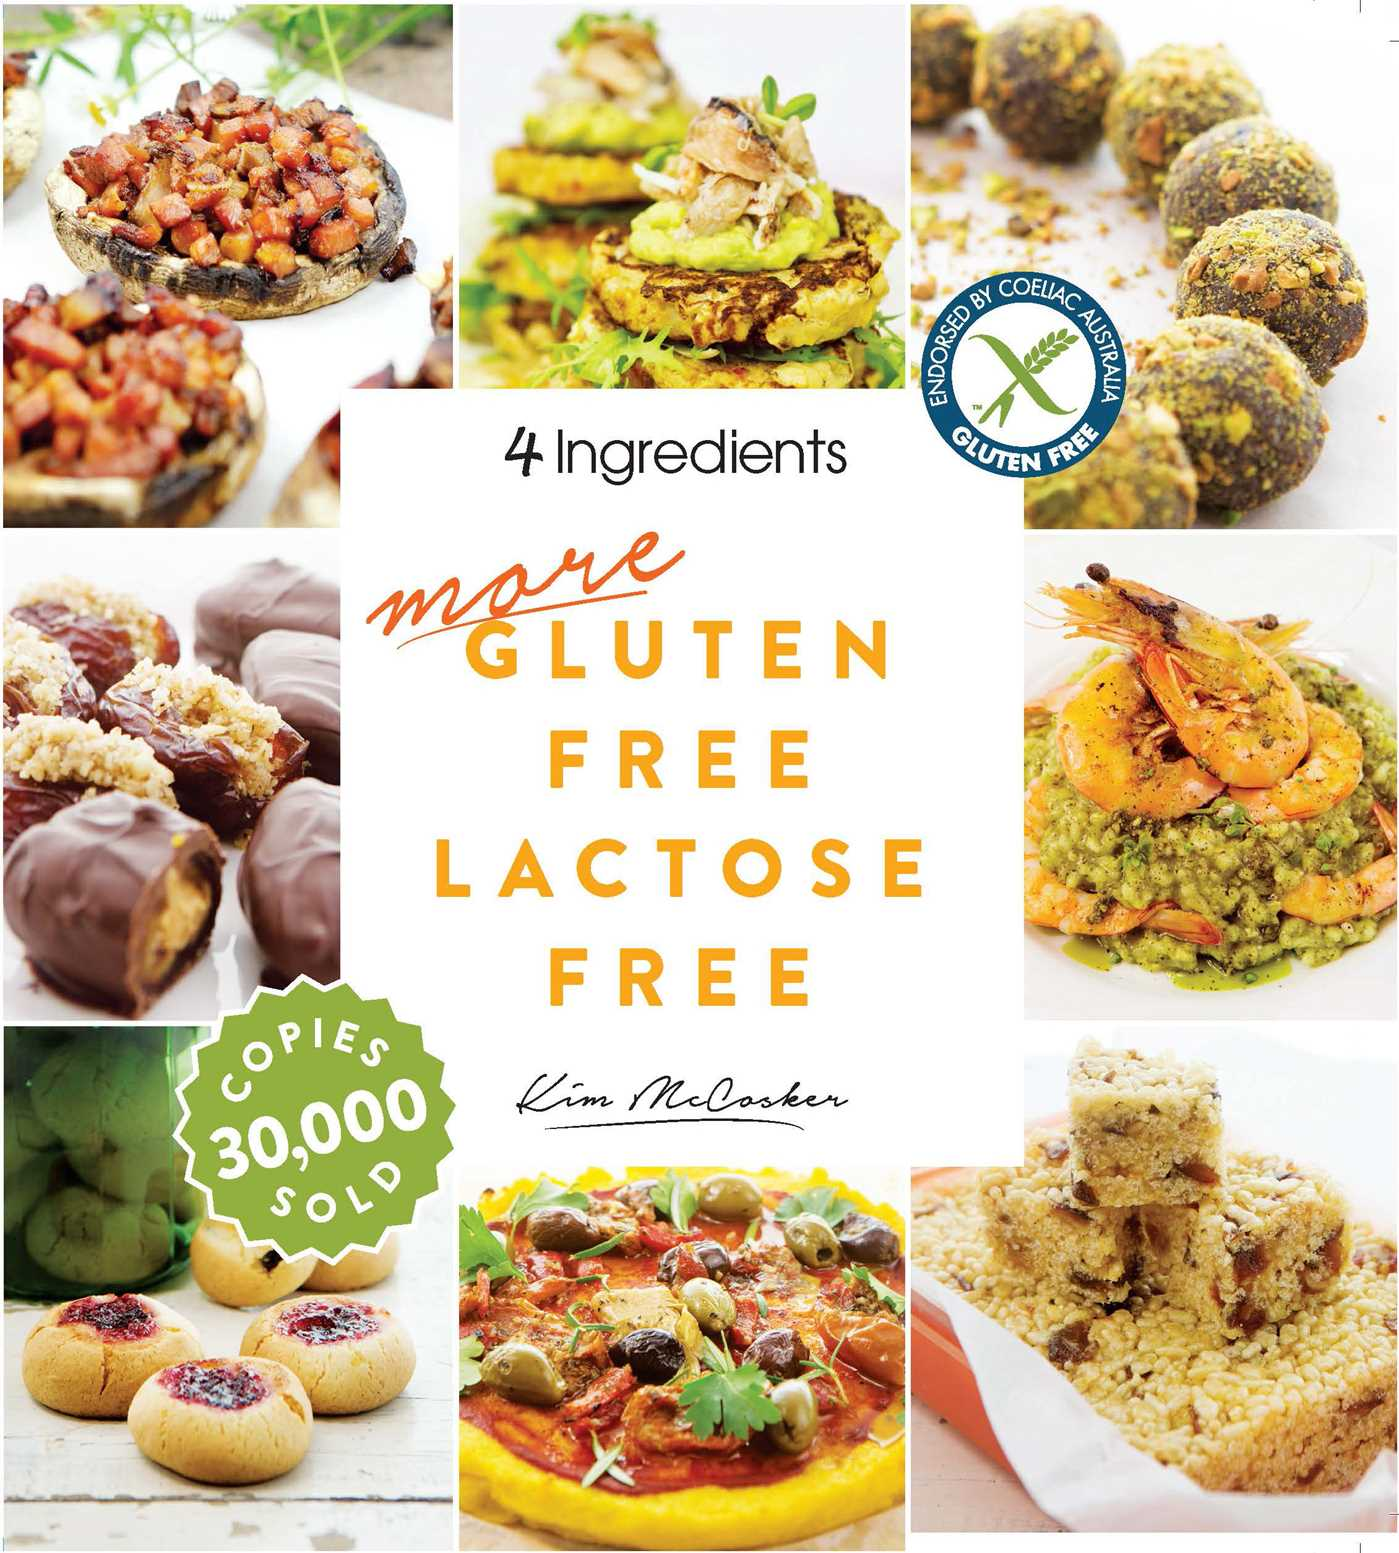 More gluten free lactose free 9780994447869 hr